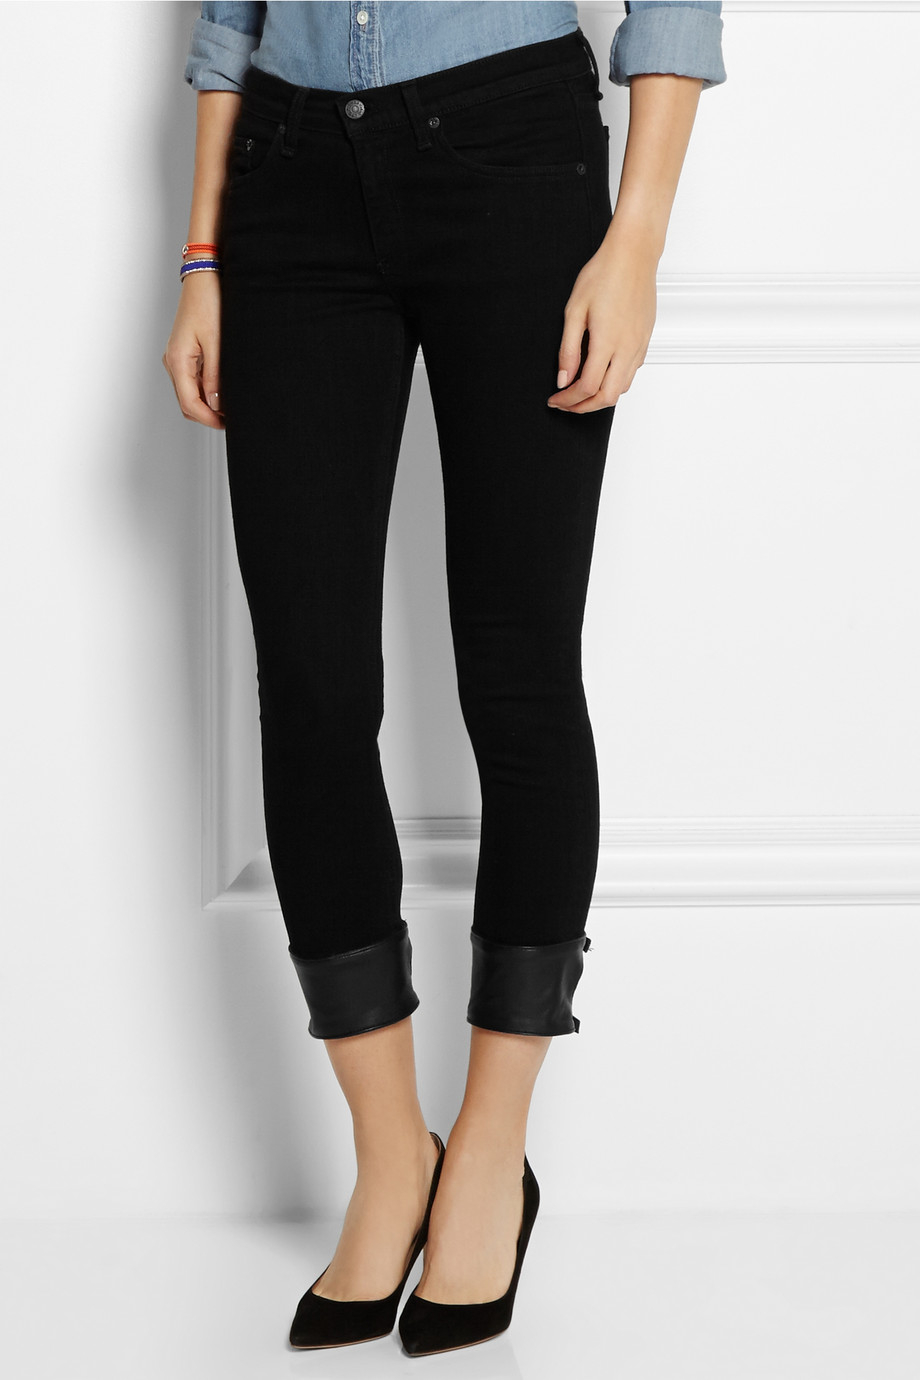 Rag & bone The Capri Leather-Trimmed Mid-Rise Skinny Jeans in ...